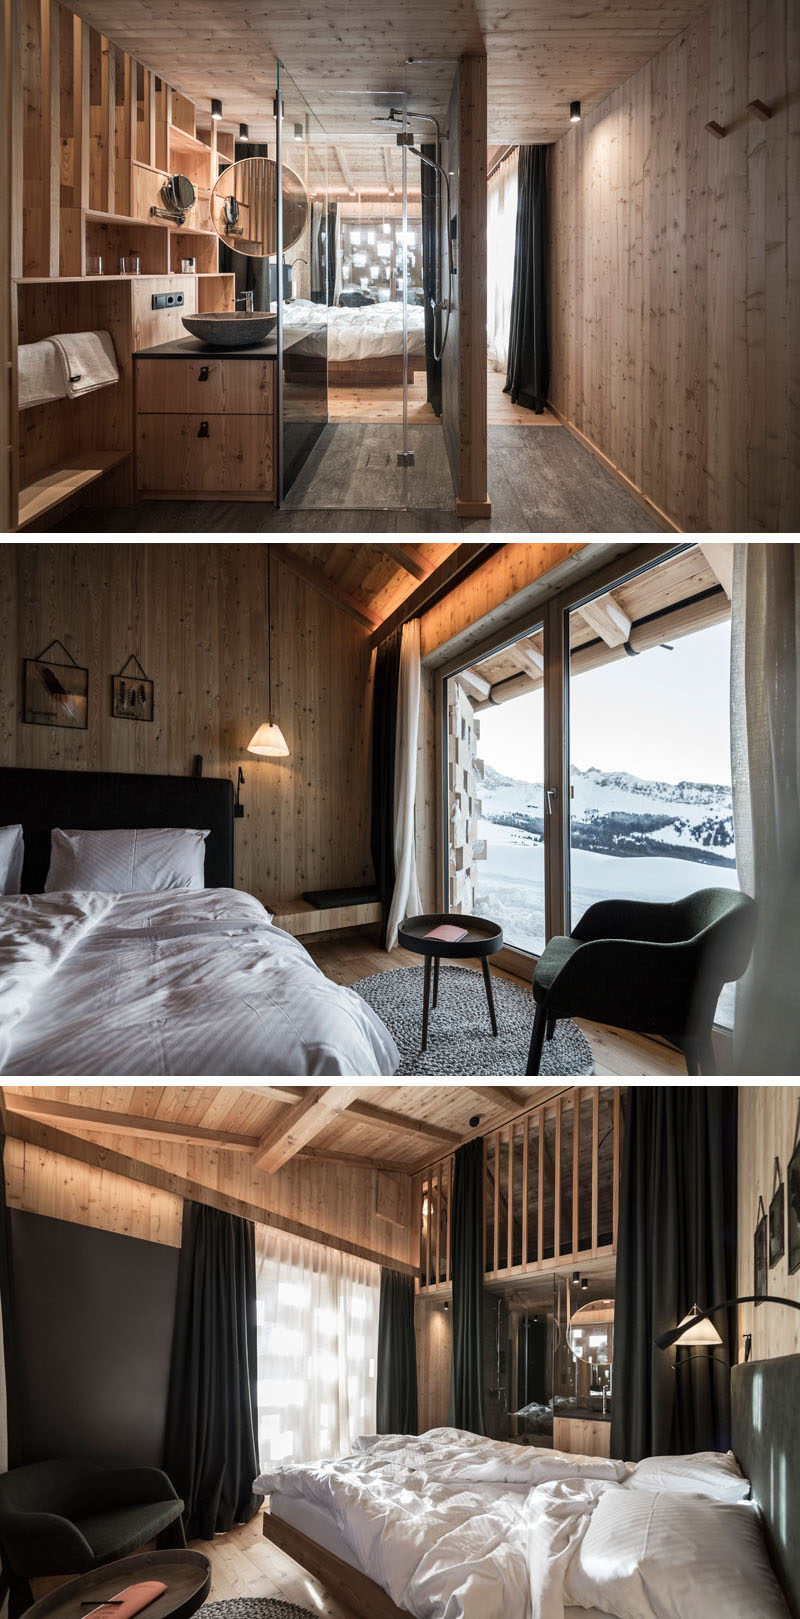 This modern hotel room is lined with wood, created a modern yet cozy atmosphere, while stairs lead up to a small loft where children can sleep, or it can be used as a relaxing nook. #HotelRoom #ModernHotelRoom